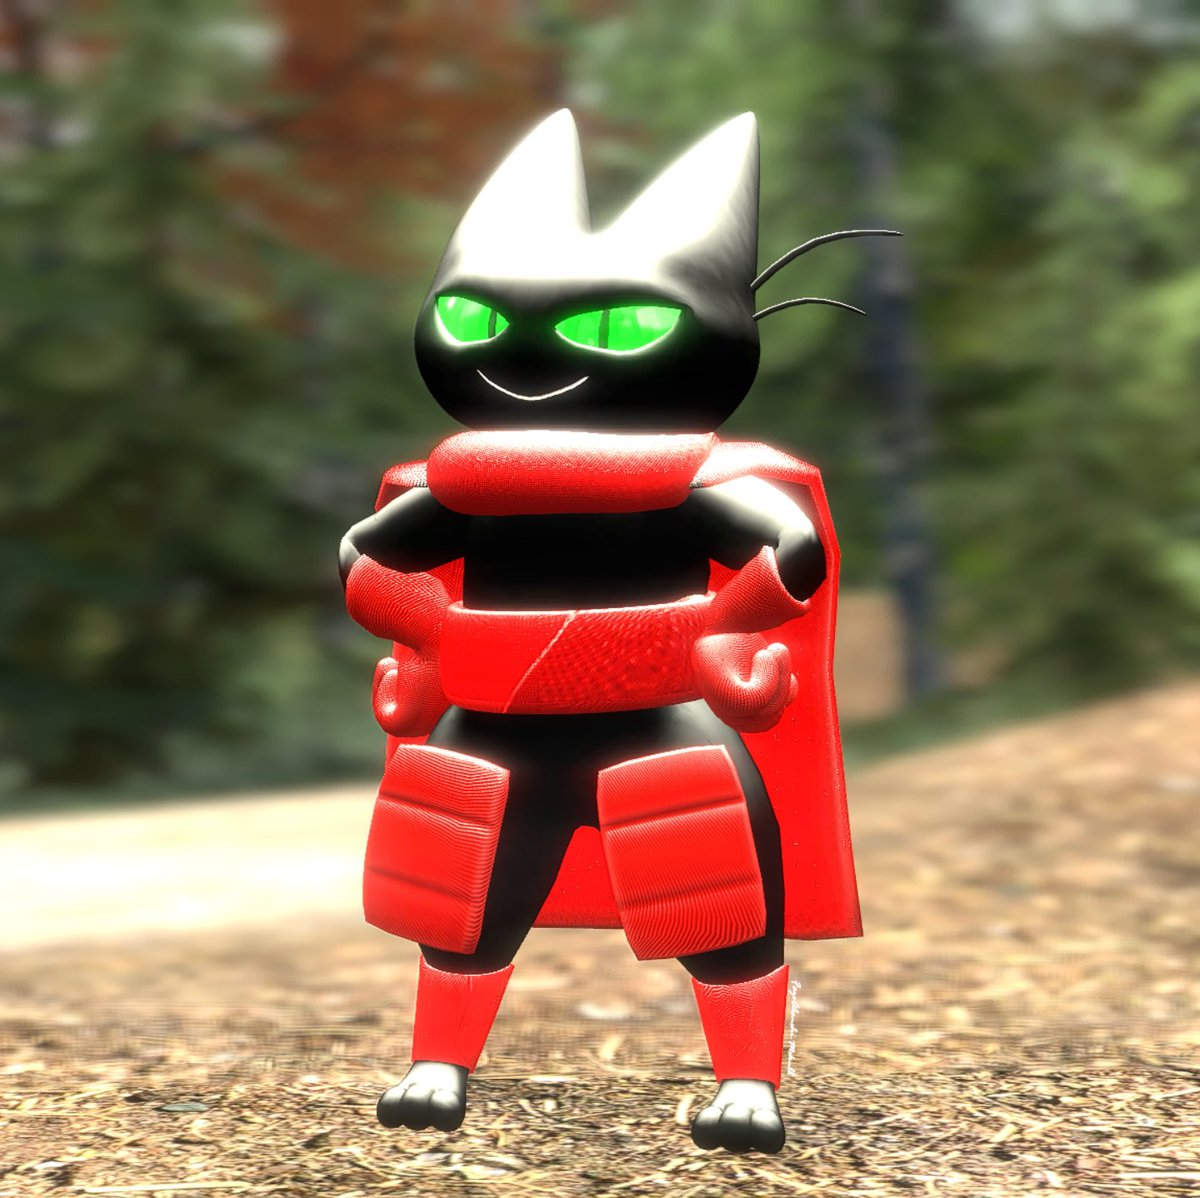 MaoMao In 3D . Sometimes I found this model from anyone you want .  Comment .  Hashtag#maomaofanart #maomaoedit #maomaoheroesofpureheartfanart #maomaoheroesofpureheart #maomaoheroesofpureheartedit #maomao #iloveyoumaomao #CartoonNetwork  #3d #3dmodeling #3dmodel #3dmodelspic.twitter.com/dJBVOUk6aH